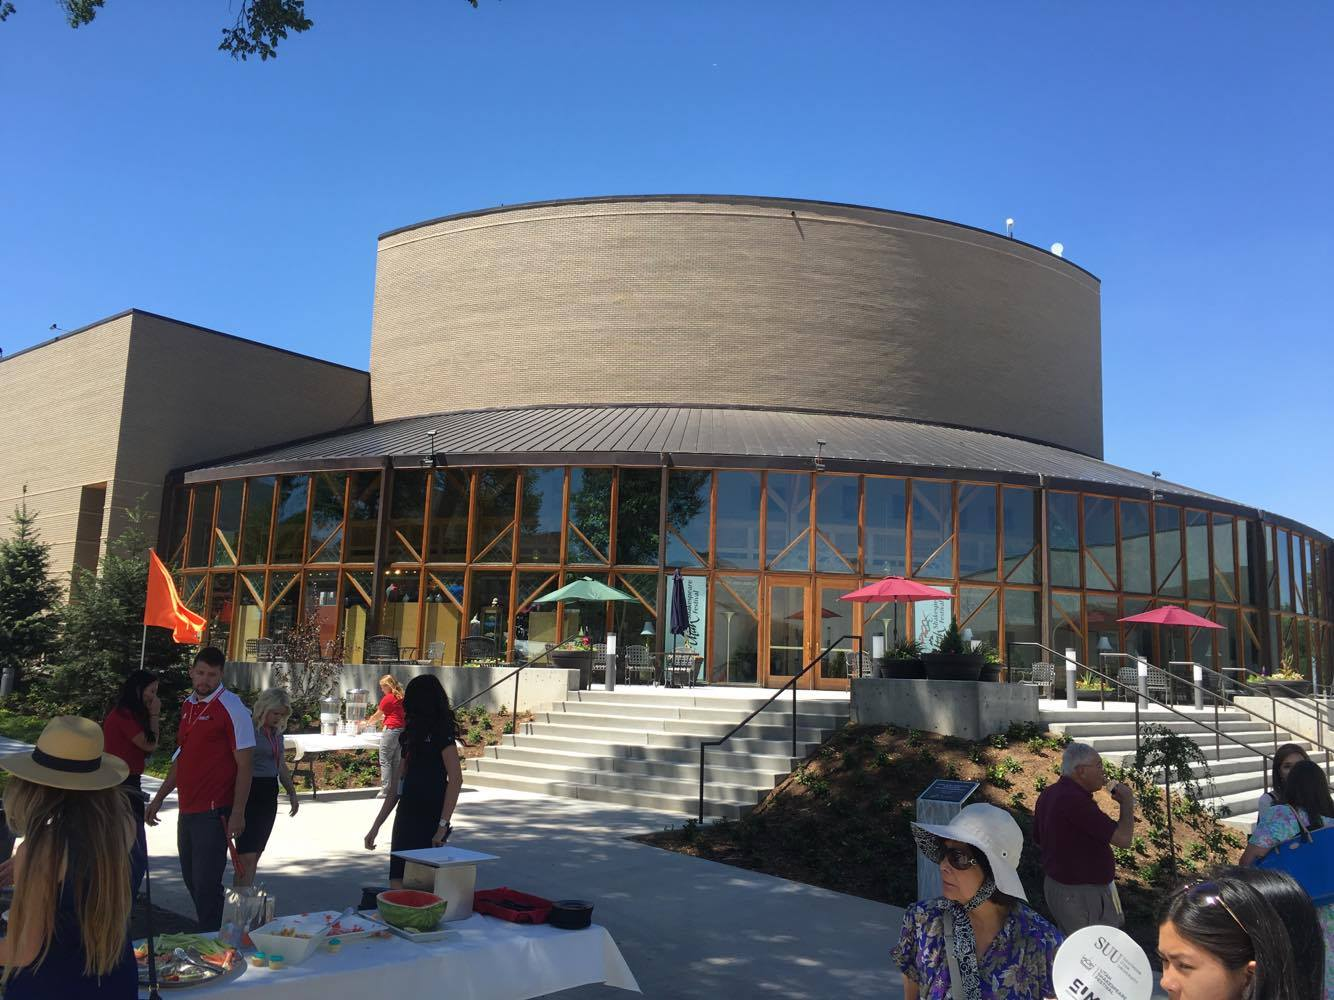 Views of the Randall L. Jones Theatre which is part of the Beverley Taylor Sorenson Center for the Arts located on the Southern Utah University campus, Cedar City, Utah, July 7, 2016   Photo by Hollie Reina, Cedar City News